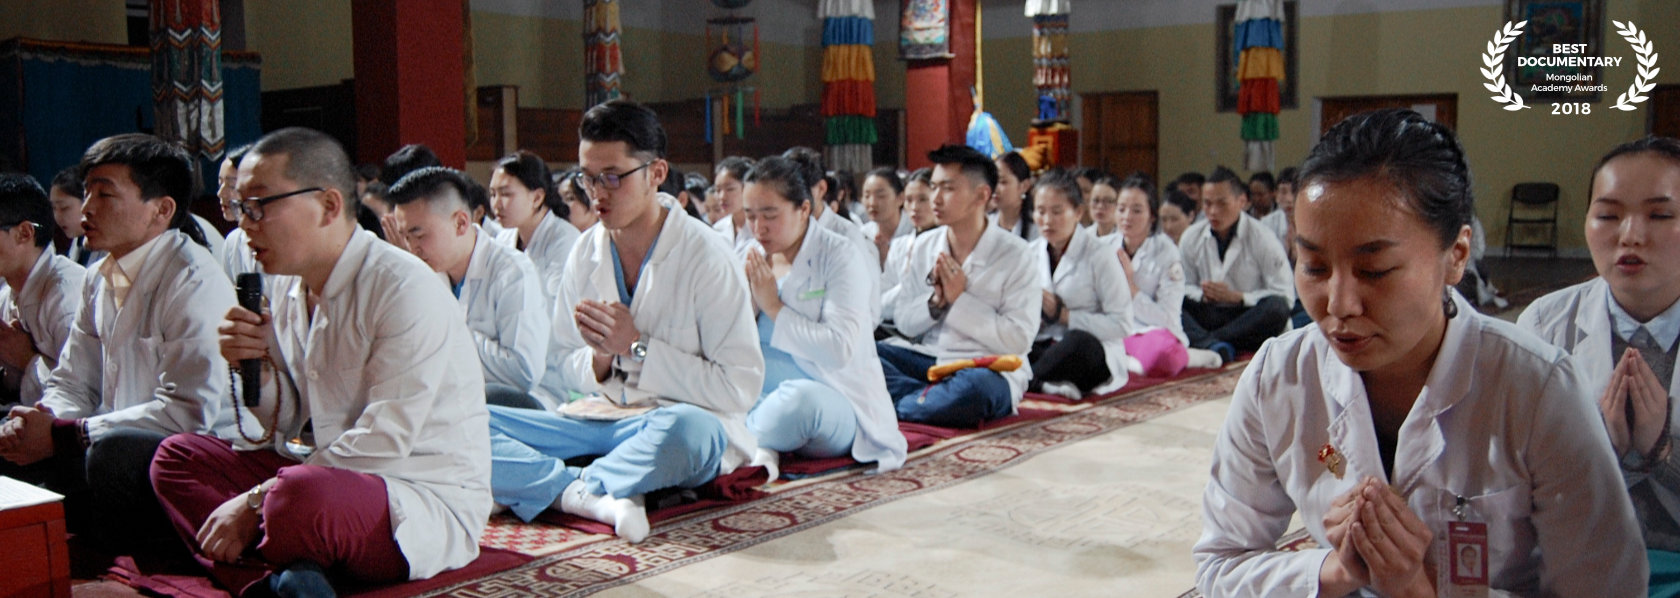 A group of people with palms together in prayer session - The Medicine Buddha - THIS Buddhist Film Festival